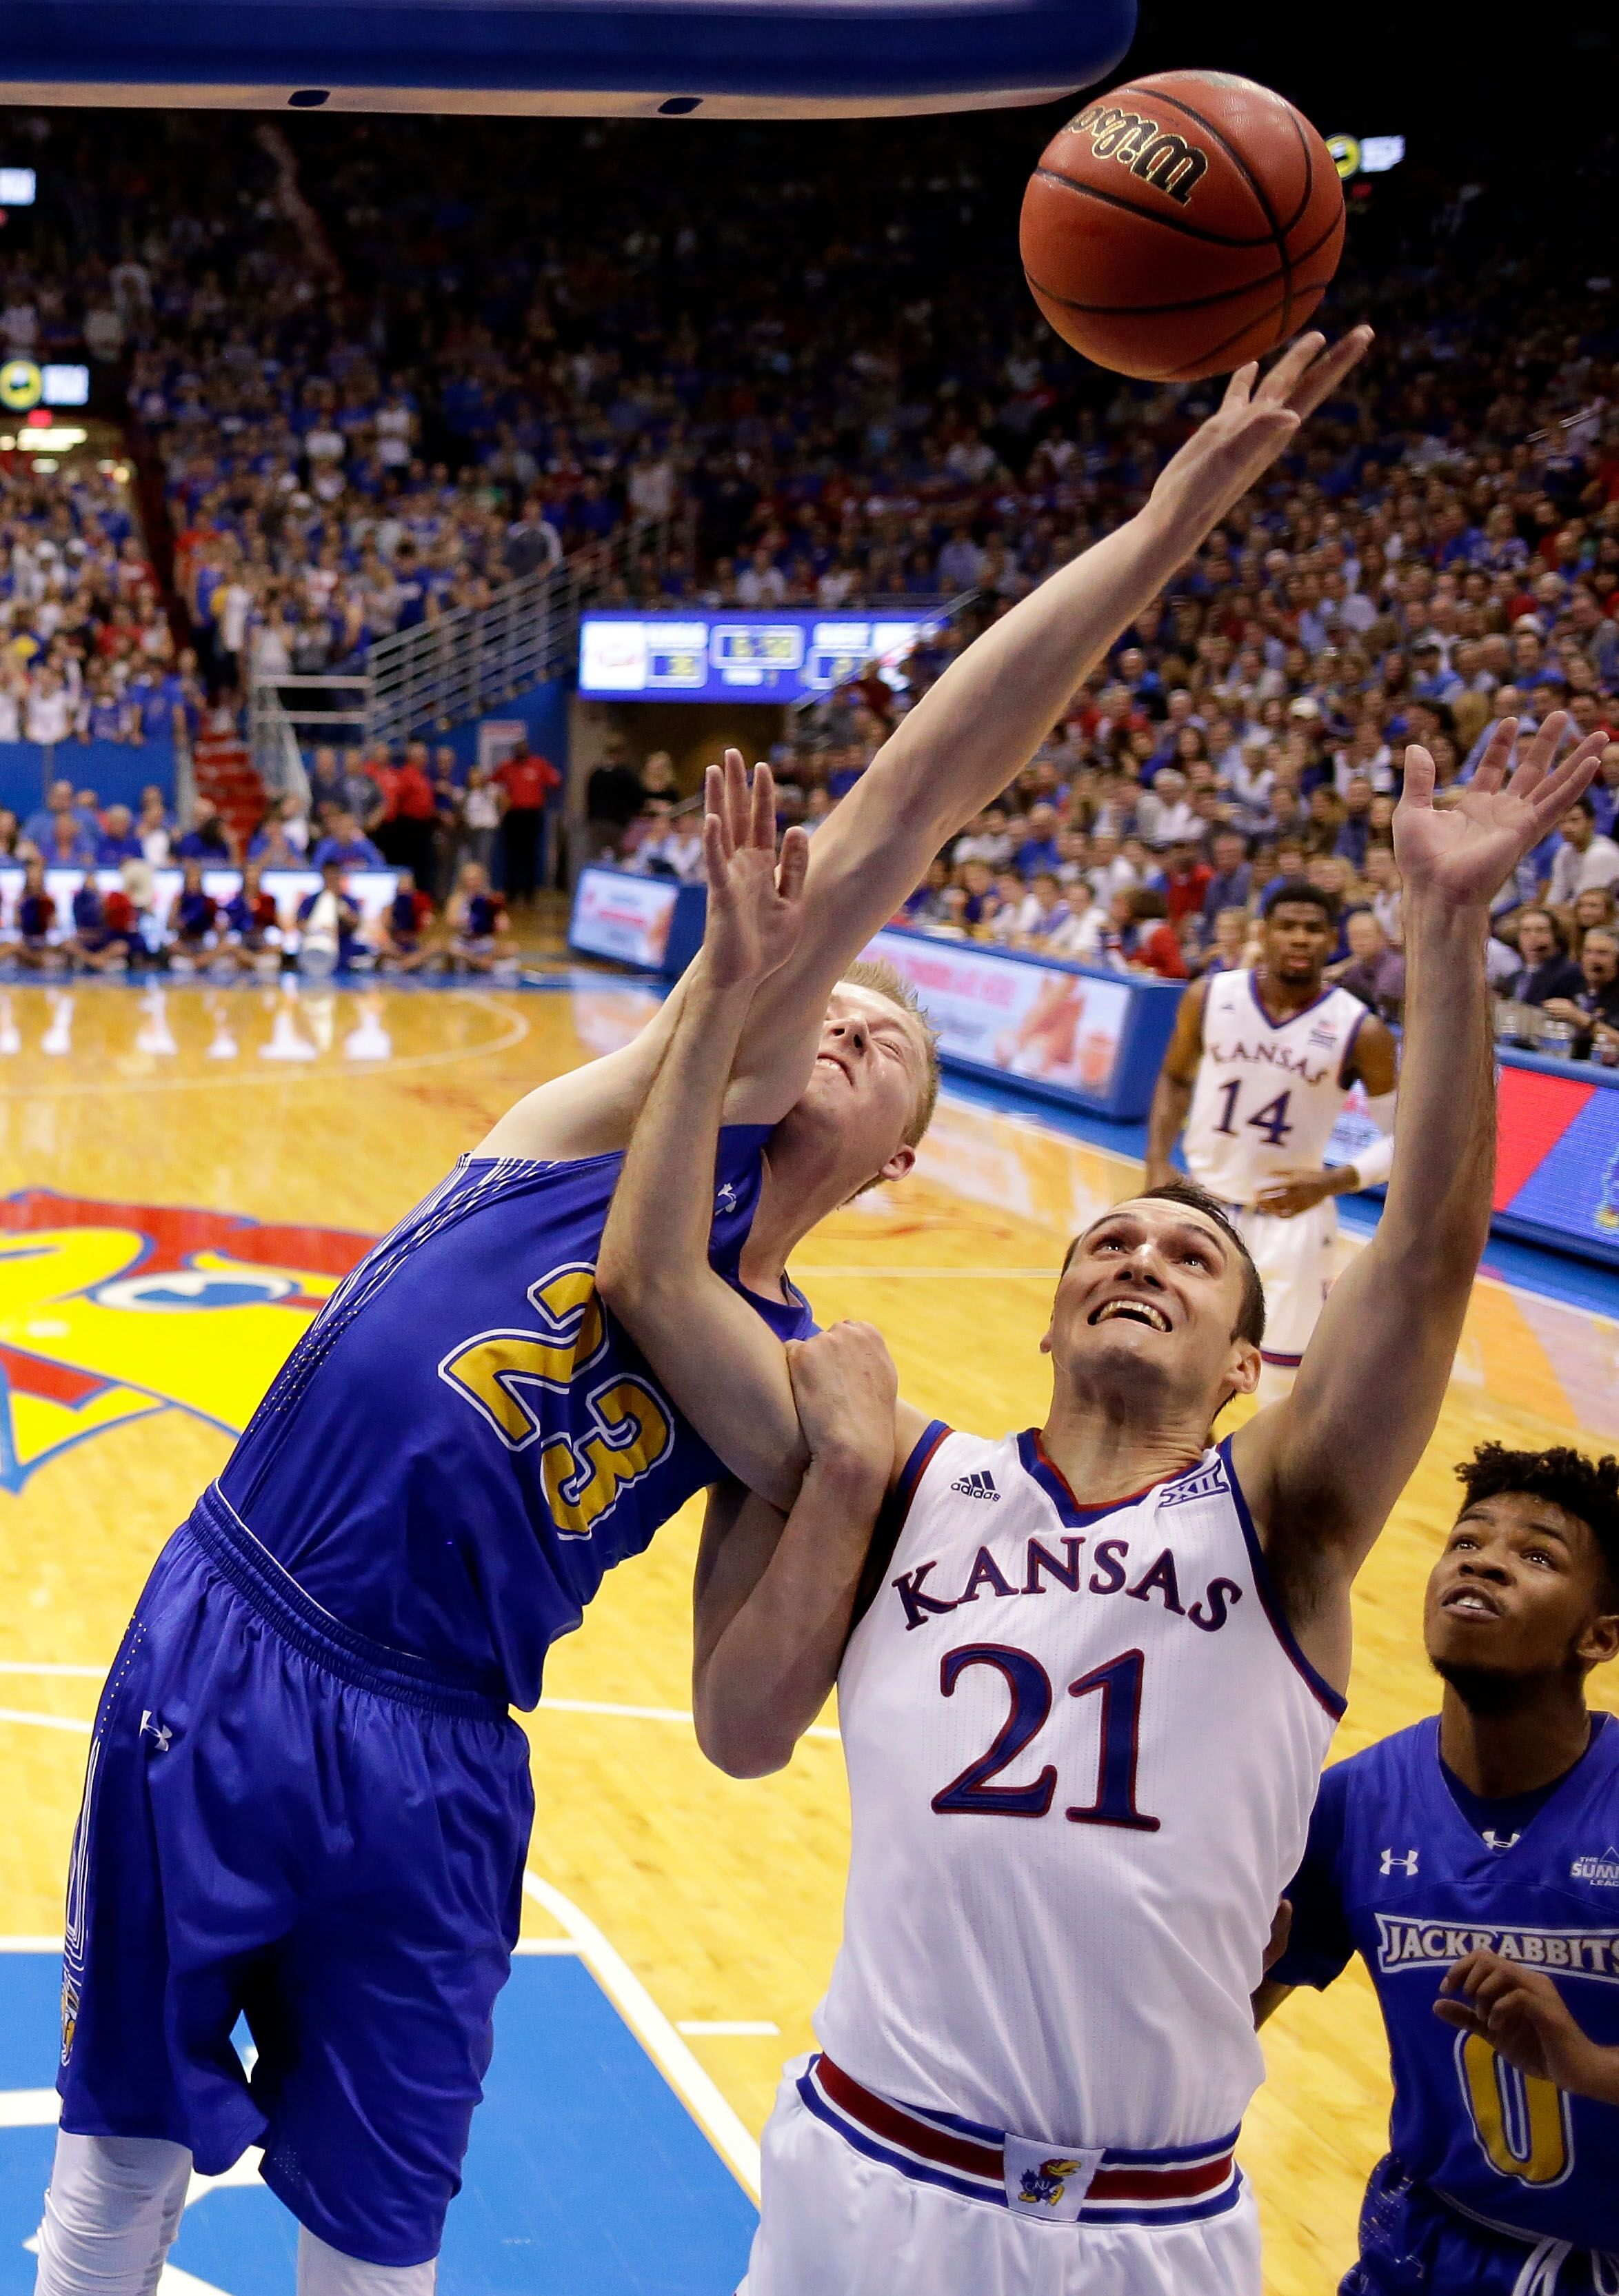 875522252-south-dakota-state-v-kansas.jpg